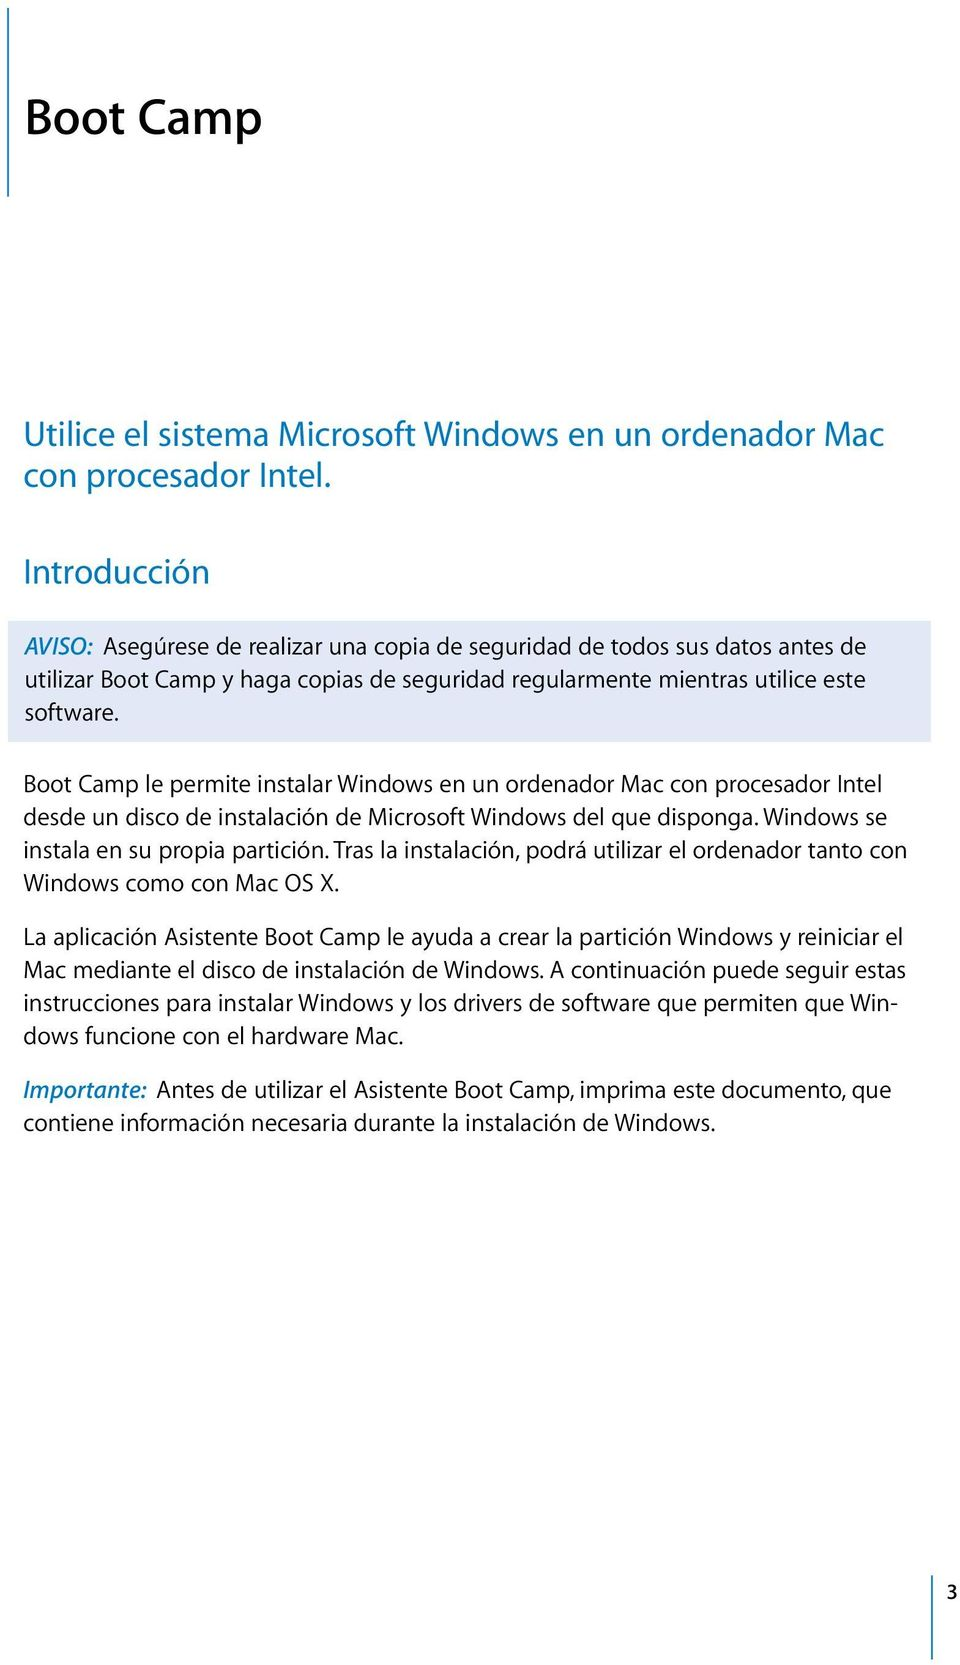 Boot Camp le permite instalar Windows en un ordenador Mac con procesador Intel desde un disco de instalación de Microsoft Windows del que disponga. Windows se instala en su propia partición.